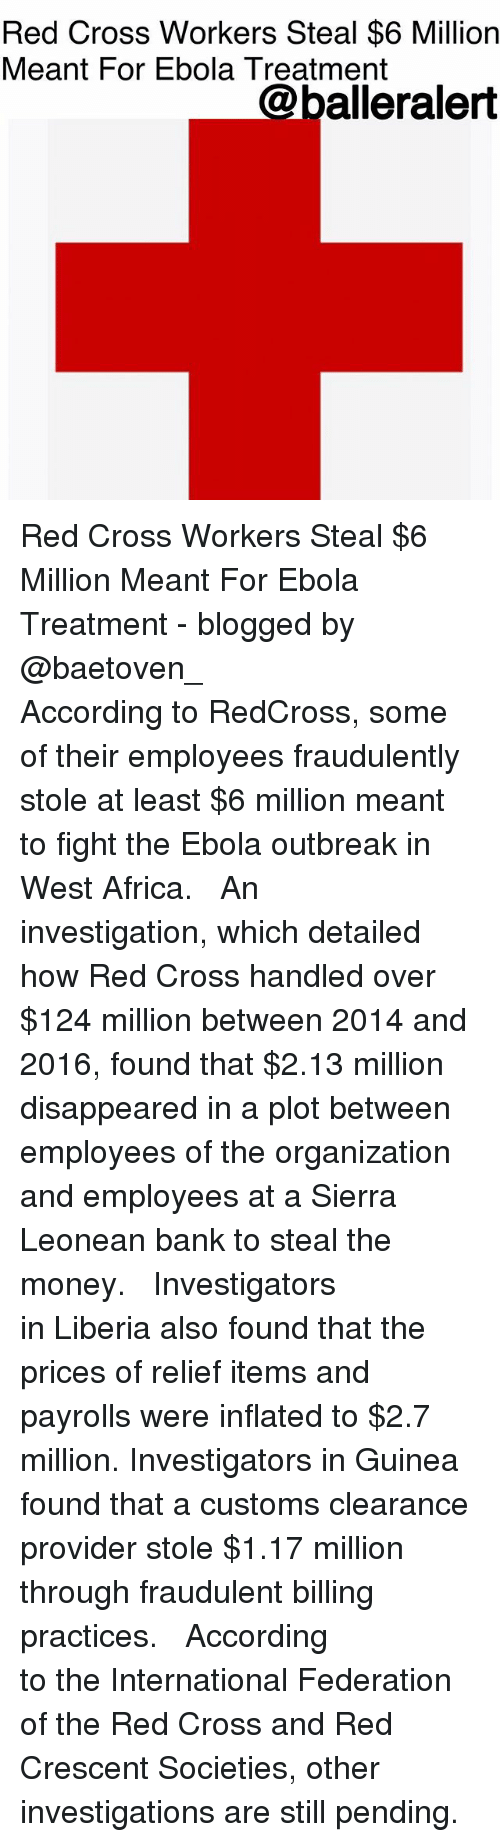 liberia: Red Cross Workers Steal $6 Million  Meant For Ebola Treatment  @balleralert Red Cross Workers Steal $6 Million Meant For Ebola Treatment - blogged by @baetoven_ ⠀⠀⠀⠀⠀⠀⠀ ⠀⠀⠀⠀⠀⠀⠀ According to RedCross, some of their employees fraudulently stole at least $6 million meant to fight the Ebola outbreak in West Africa. ⠀⠀⠀⠀⠀⠀⠀ ⠀⠀⠀⠀⠀⠀⠀ An investigation, which detailed how Red Cross handled over $124 million between 2014 and 2016, found that $2.13 million disappeared in a plot between employees of the organization and employees at a Sierra Leonean bank to steal the money. ⠀⠀⠀⠀⠀⠀⠀ ⠀⠀⠀⠀⠀⠀⠀ Investigators in Liberia also found that the prices of relief items and payrolls were inflated to $2.7 million. Investigators in Guinea found that a customs clearance provider stole $1.17 million through fraudulent billing practices. ⠀⠀⠀⠀⠀⠀⠀ ⠀⠀⠀⠀⠀⠀⠀ According to the International Federation of the Red Cross and Red Crescent Societies, other investigations are still pending.